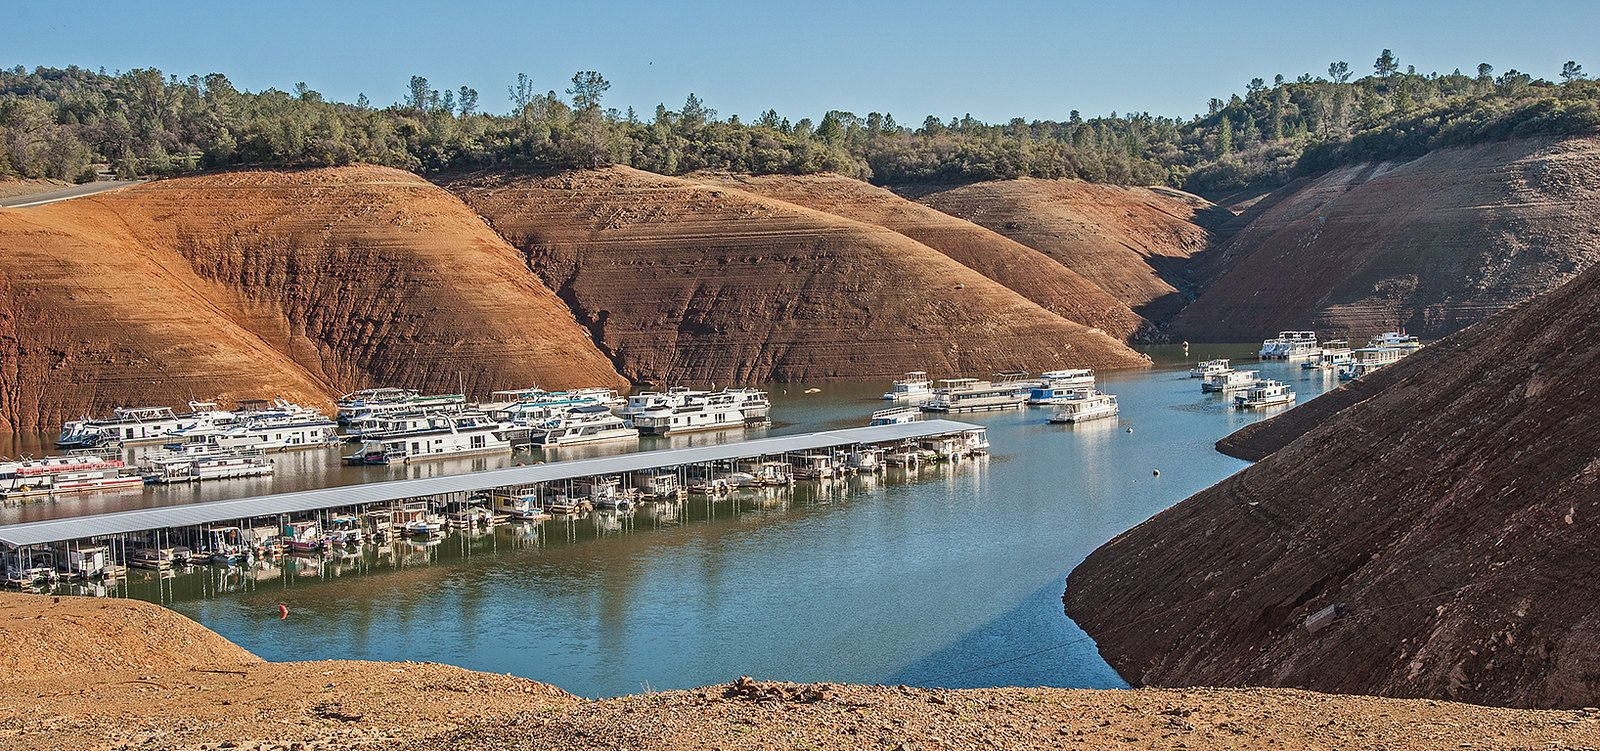 Low Water Level In Lake Oroville At Bidwell Canyon Marina Oroville California 2 22 2014